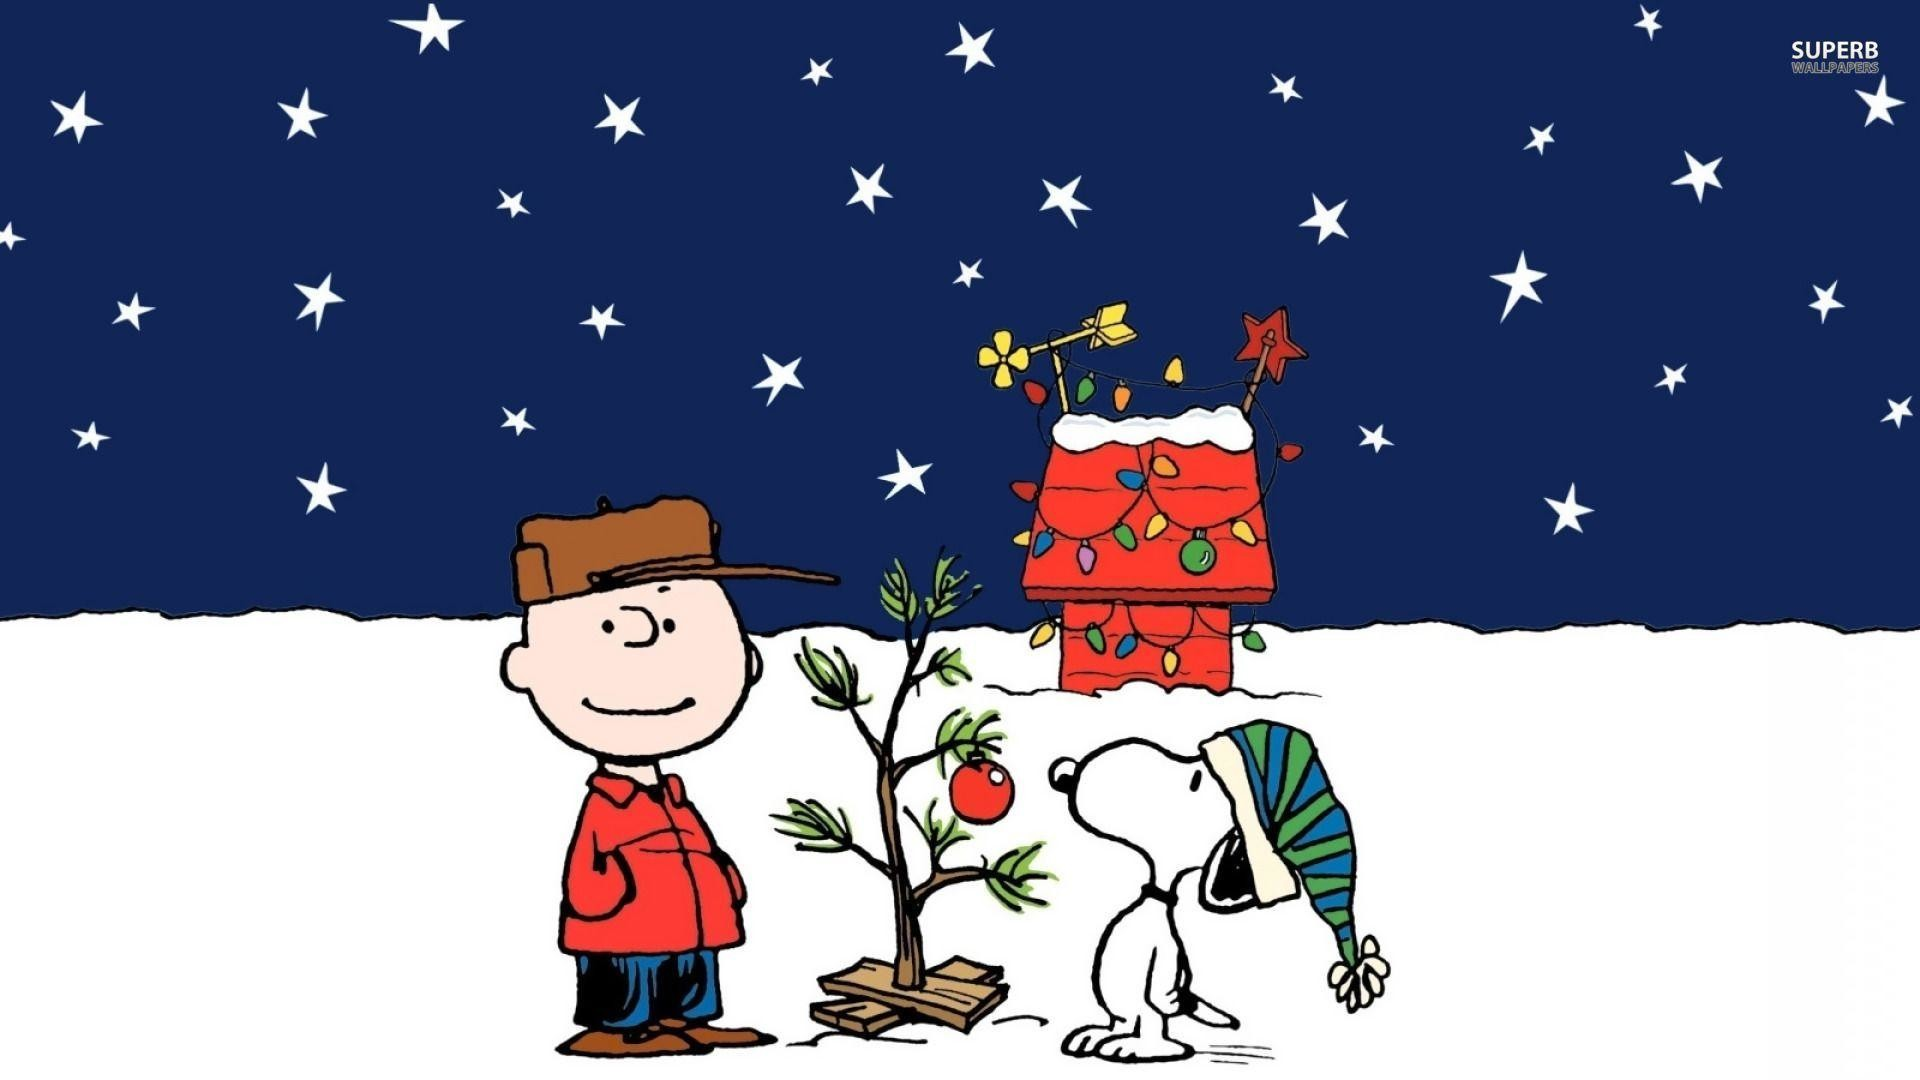 Wallpapers For > Charlie Brown Snoopy Christmas Wallpaper